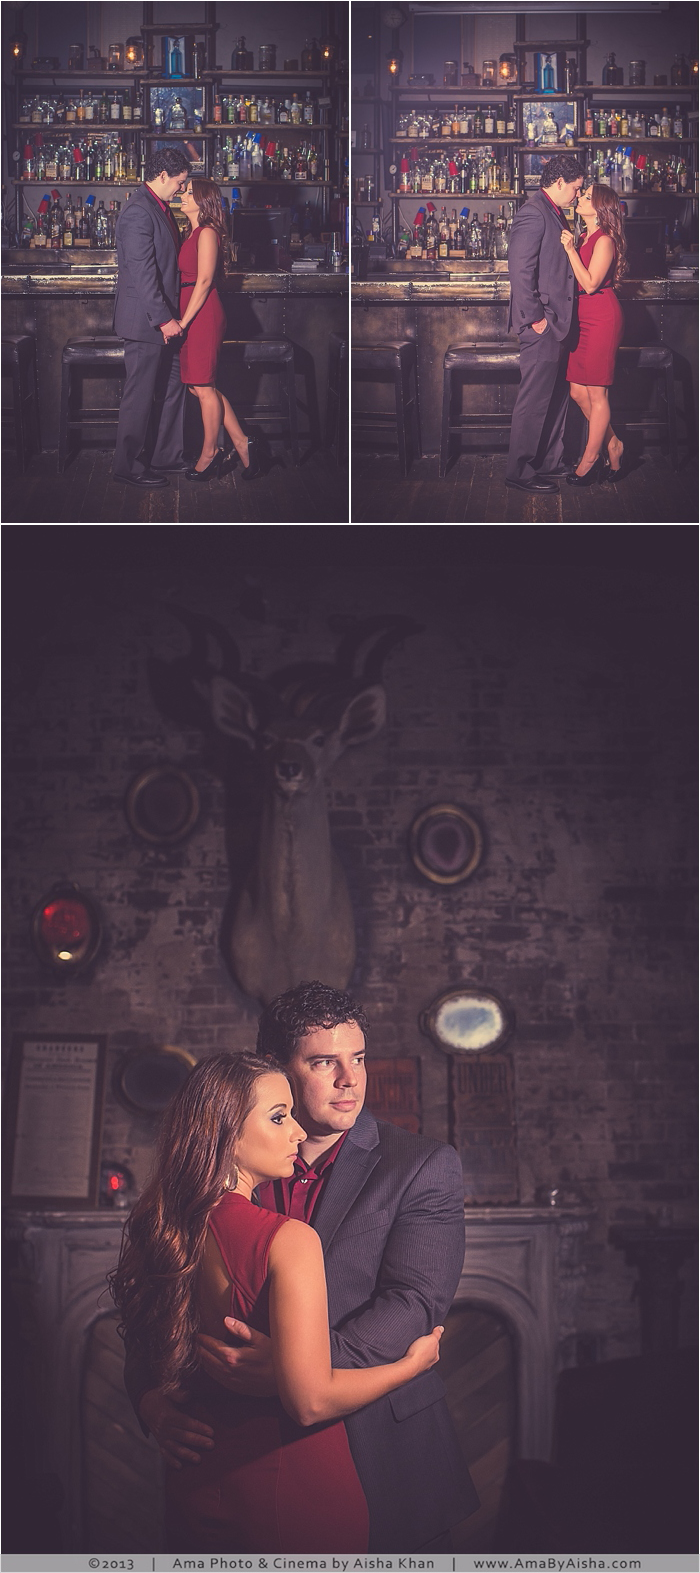 ©2013 | www.AmaByAisha.com | Houston Engagement Session at The 18th Cocktail Bar